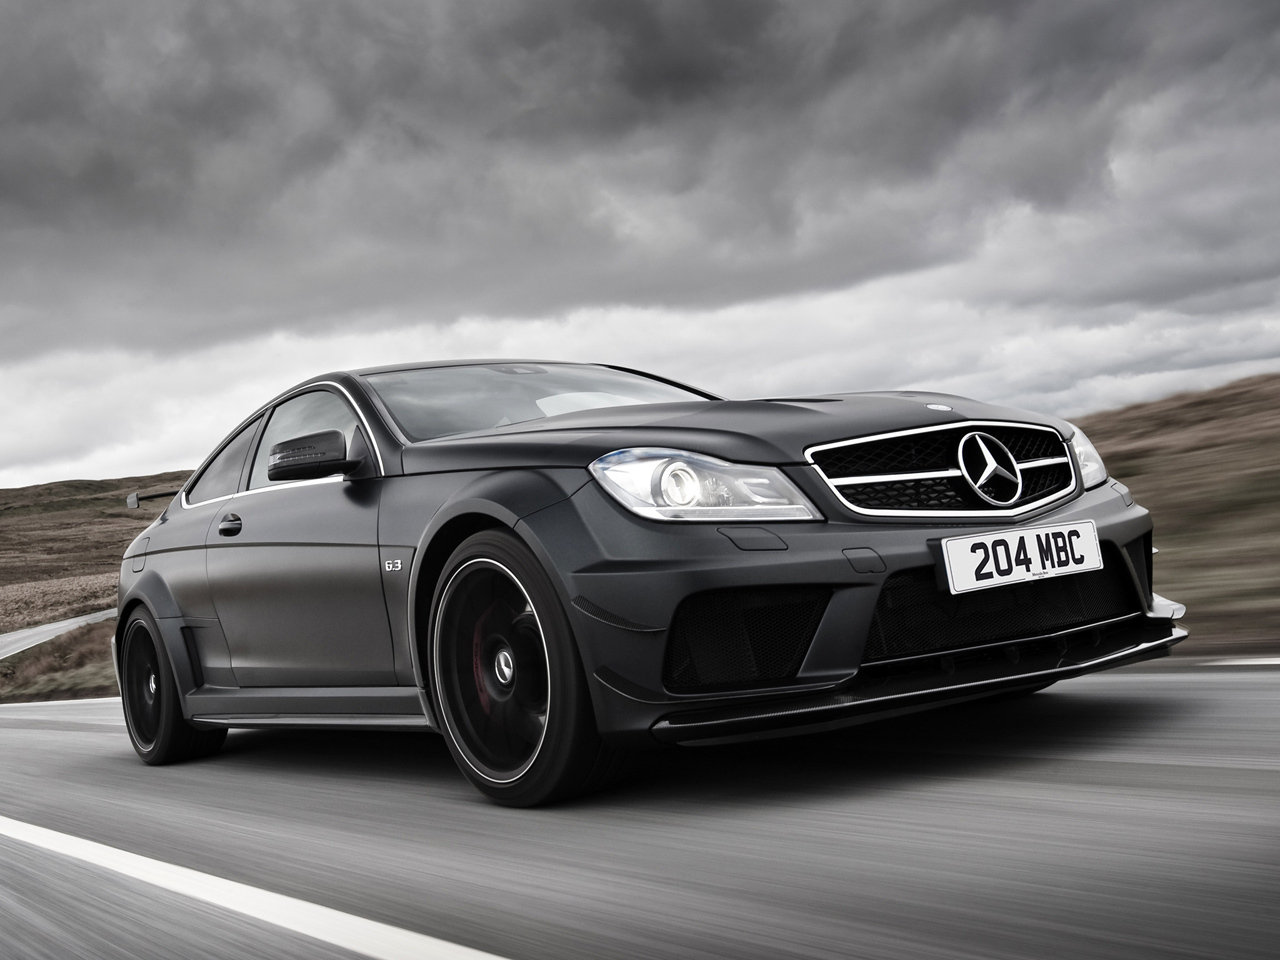 2013 mercedes c63 amg black series coupe picture 450527 for 2013 mercedes benz c63